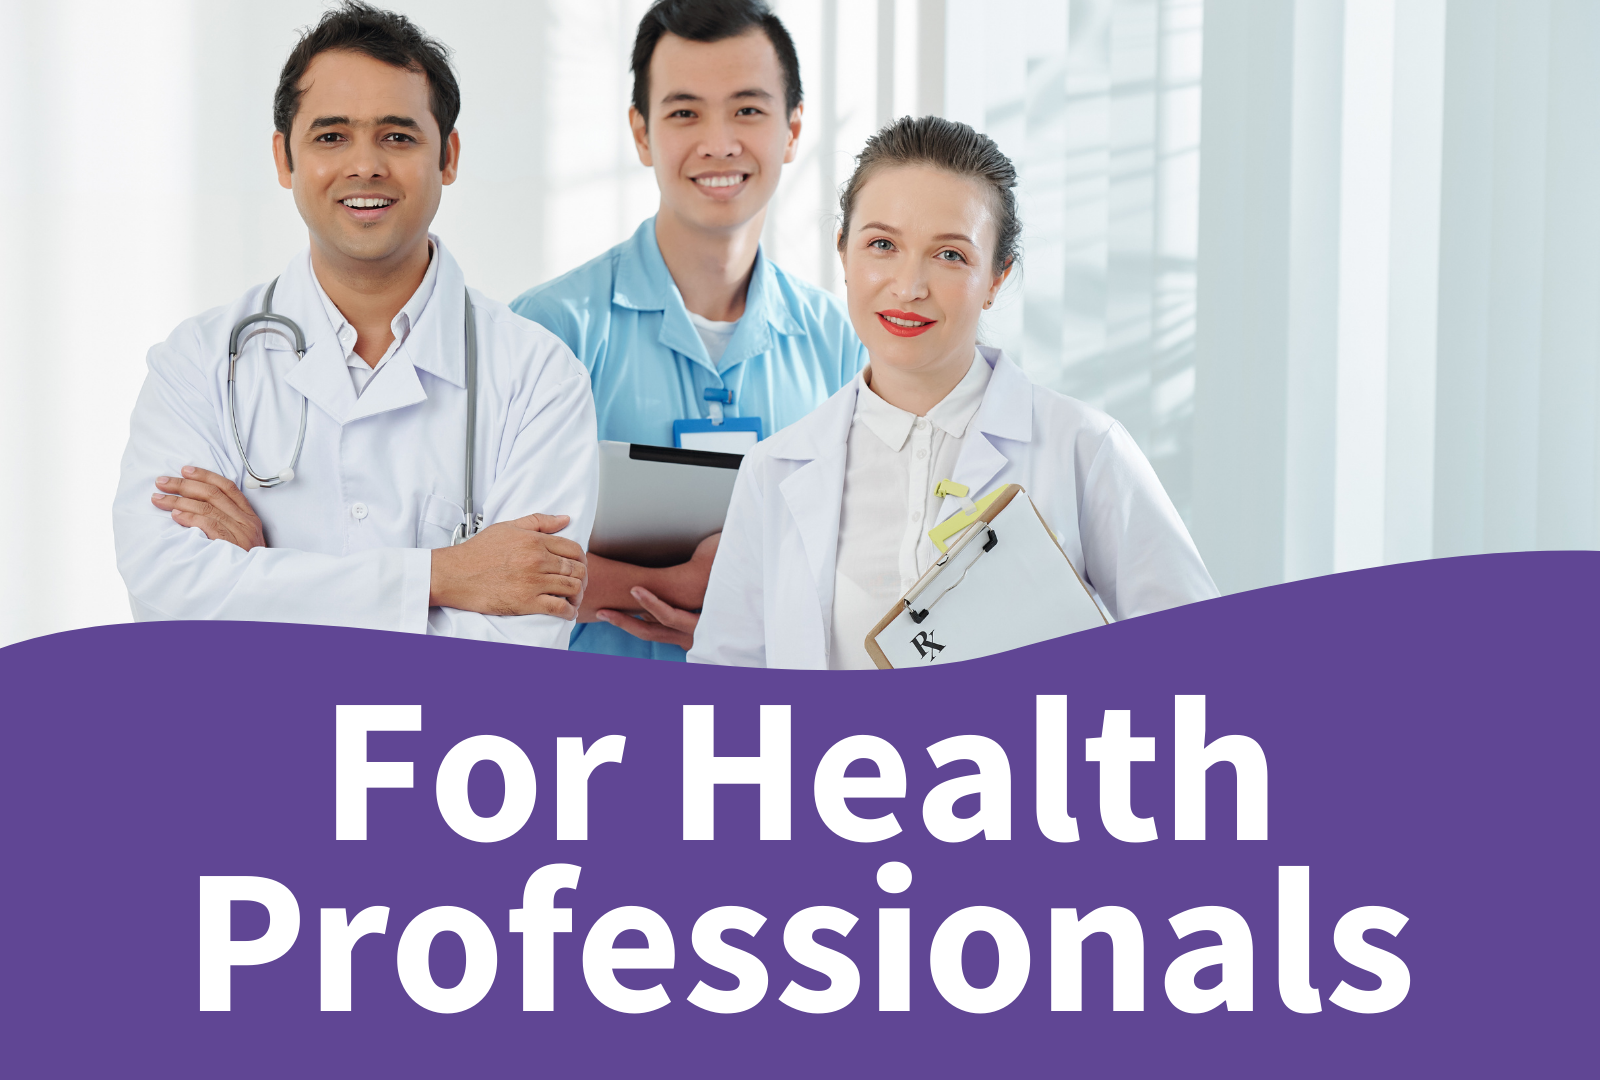 For Health Professionals